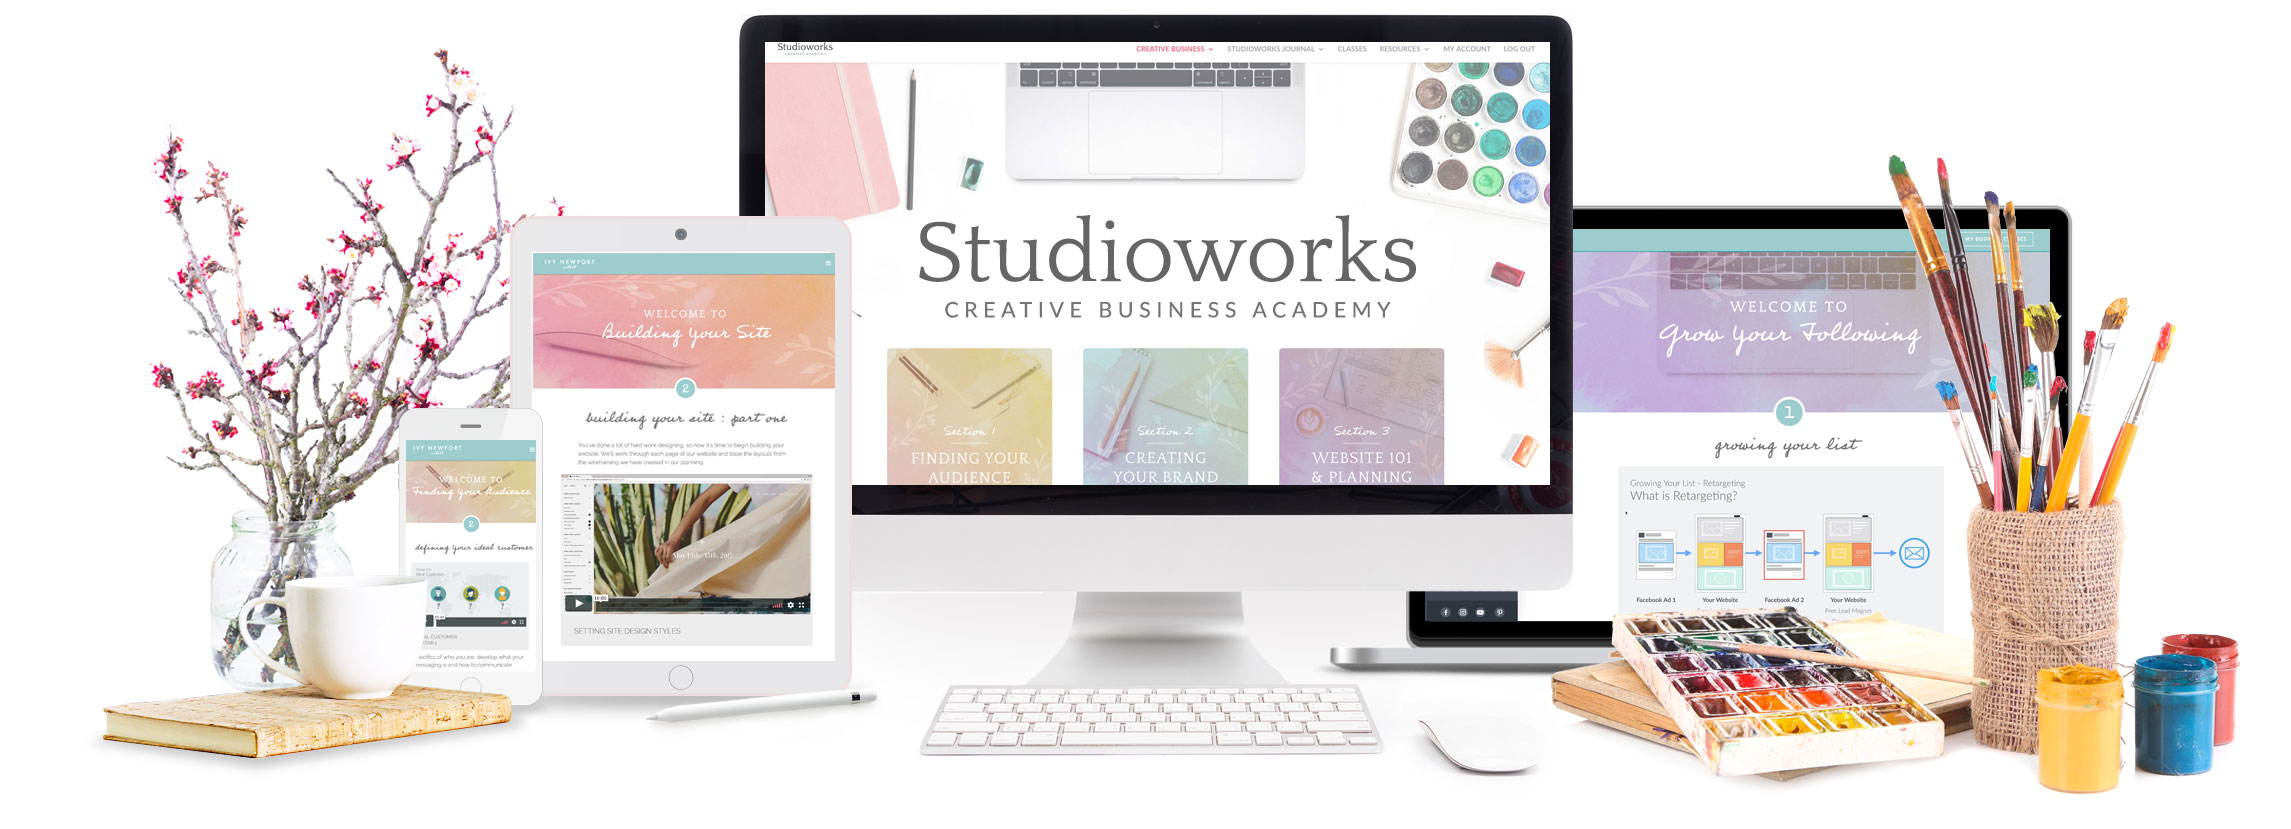 studioworks-all-access.jpg